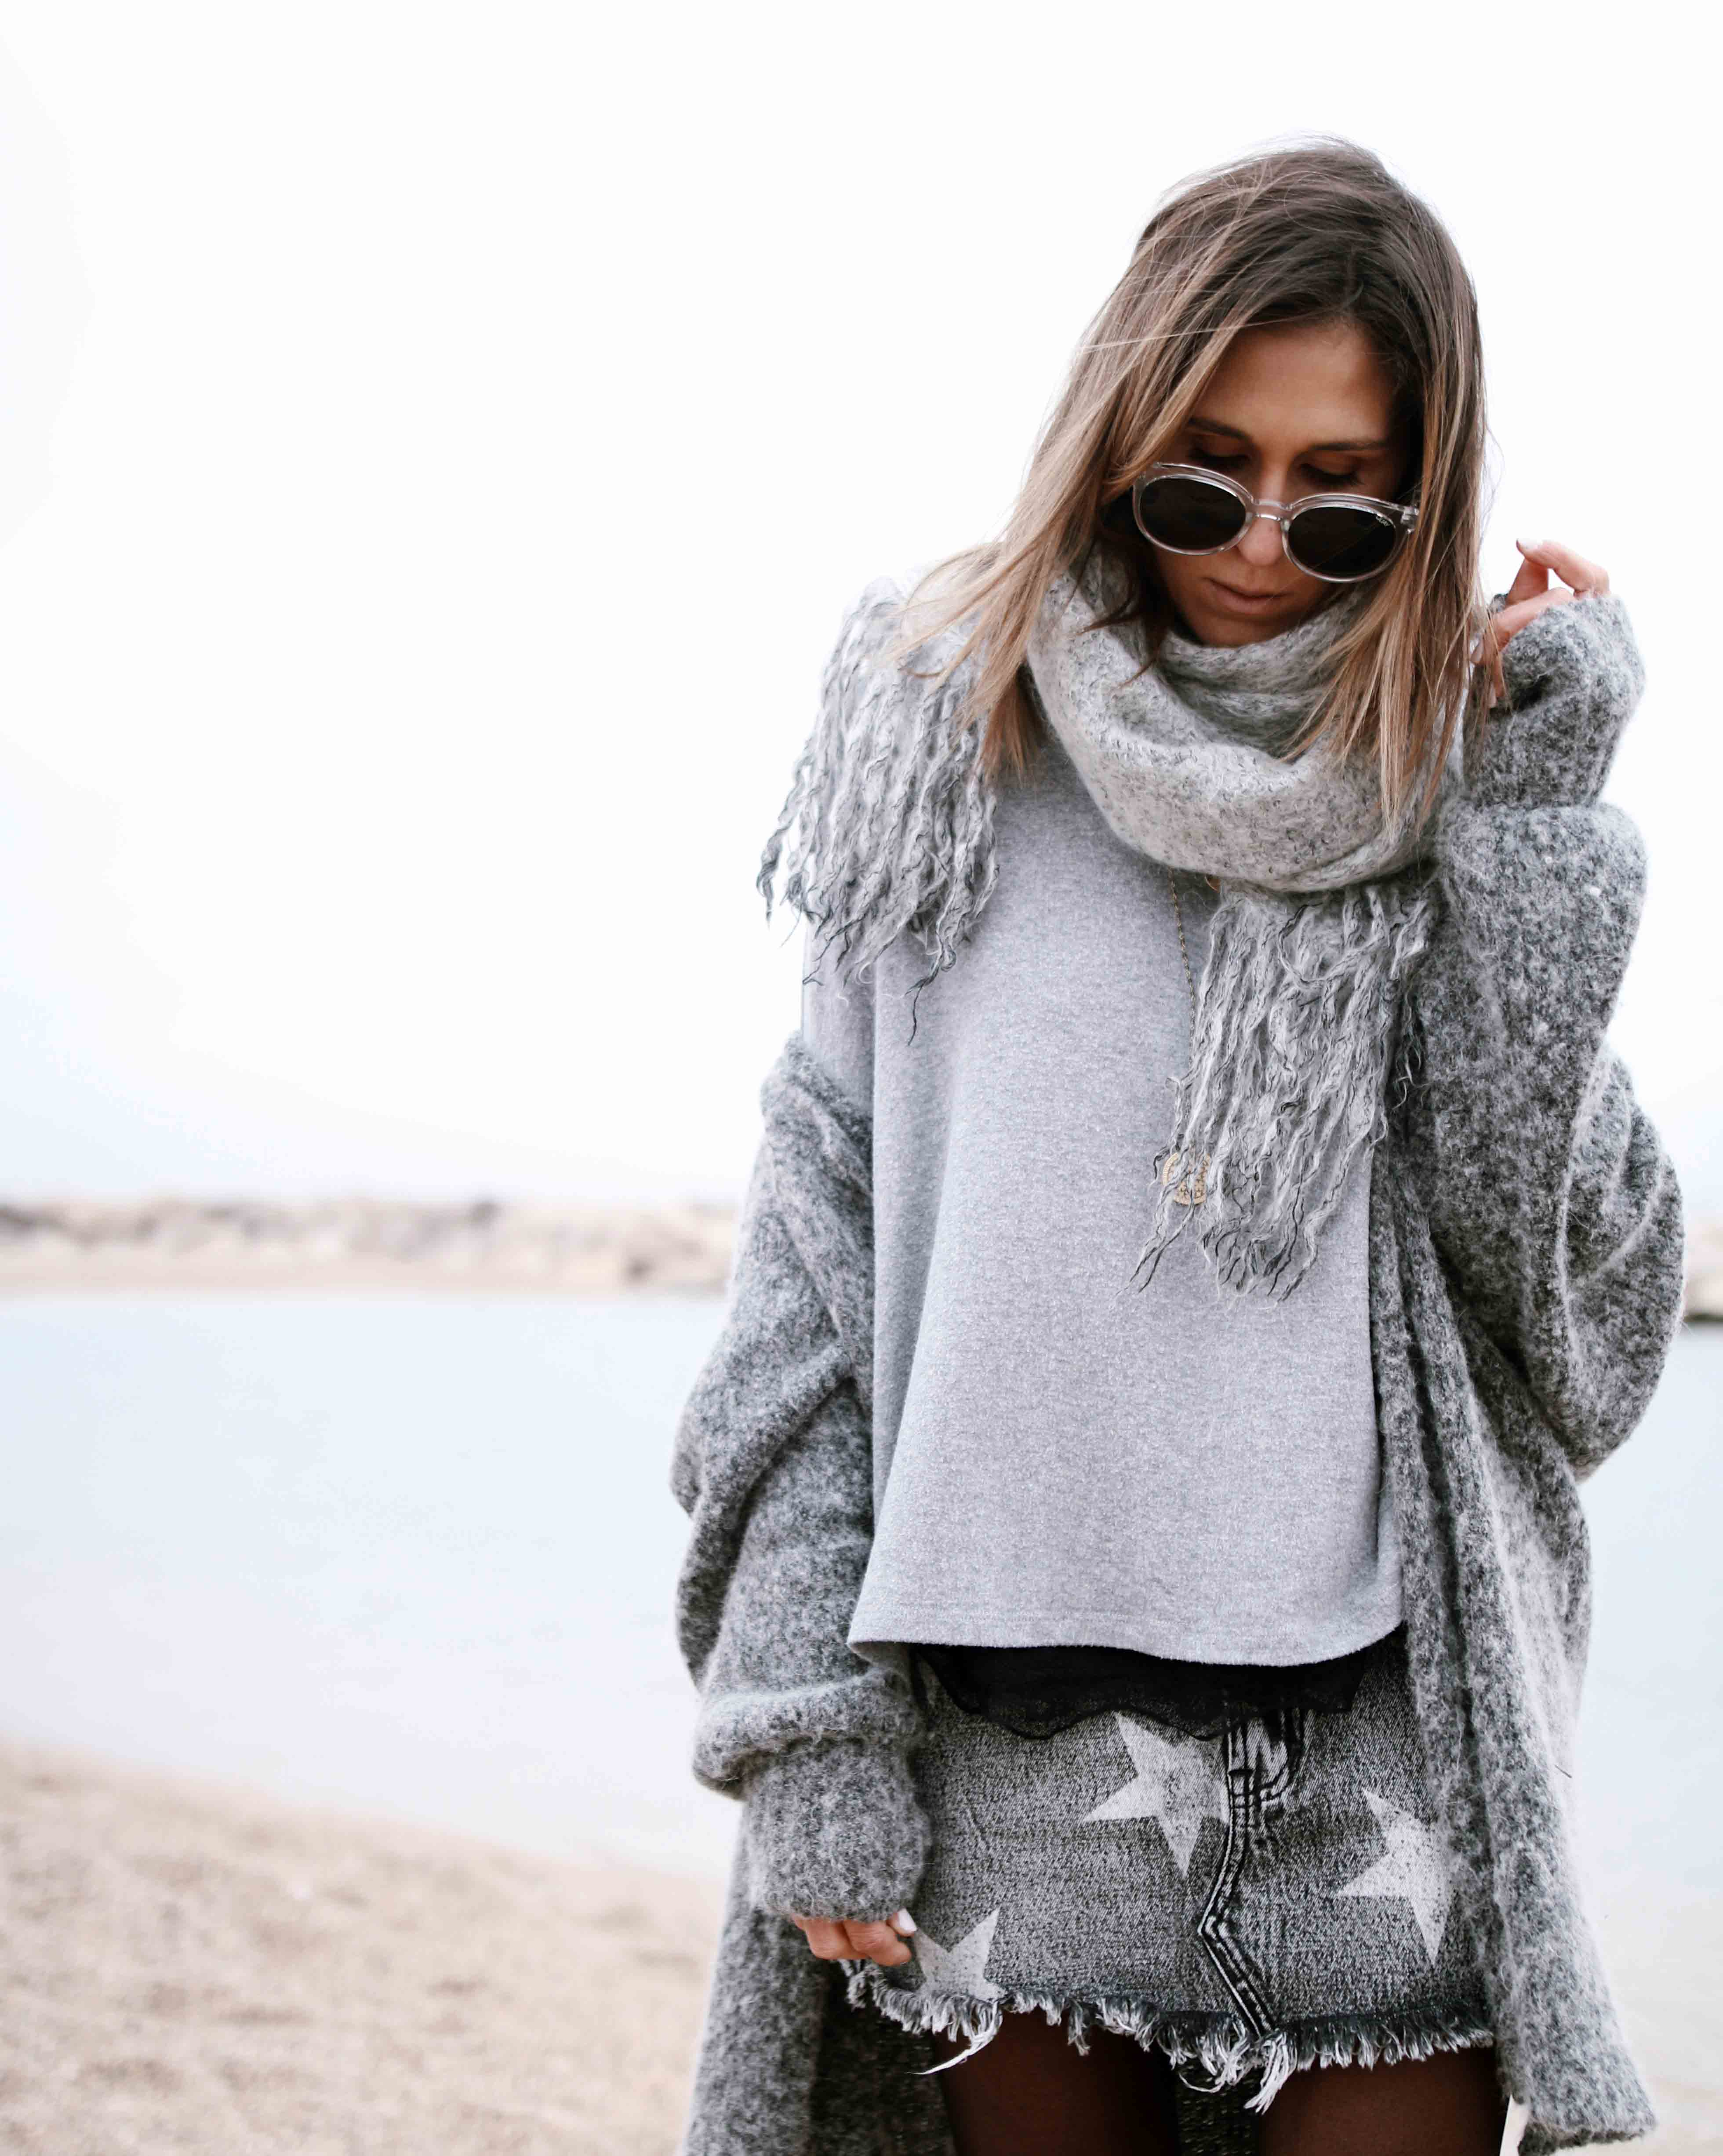 @chon.and.chon outfit inspiration, casual style